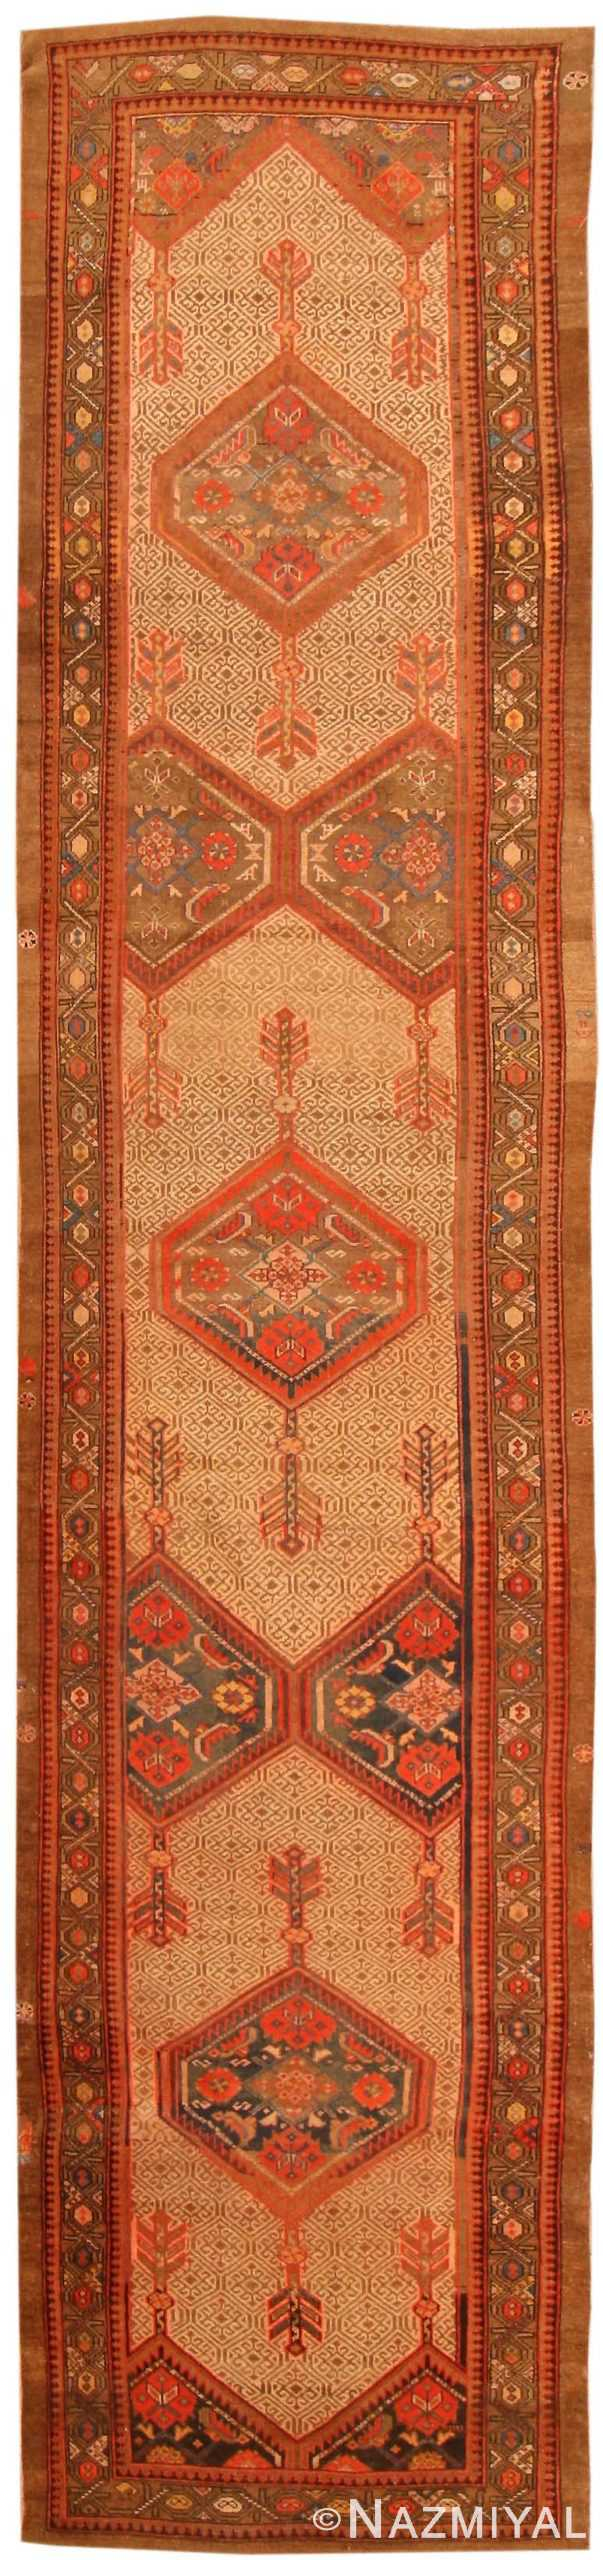 Antique Serab Persian Rug 43882 Nazmiyal